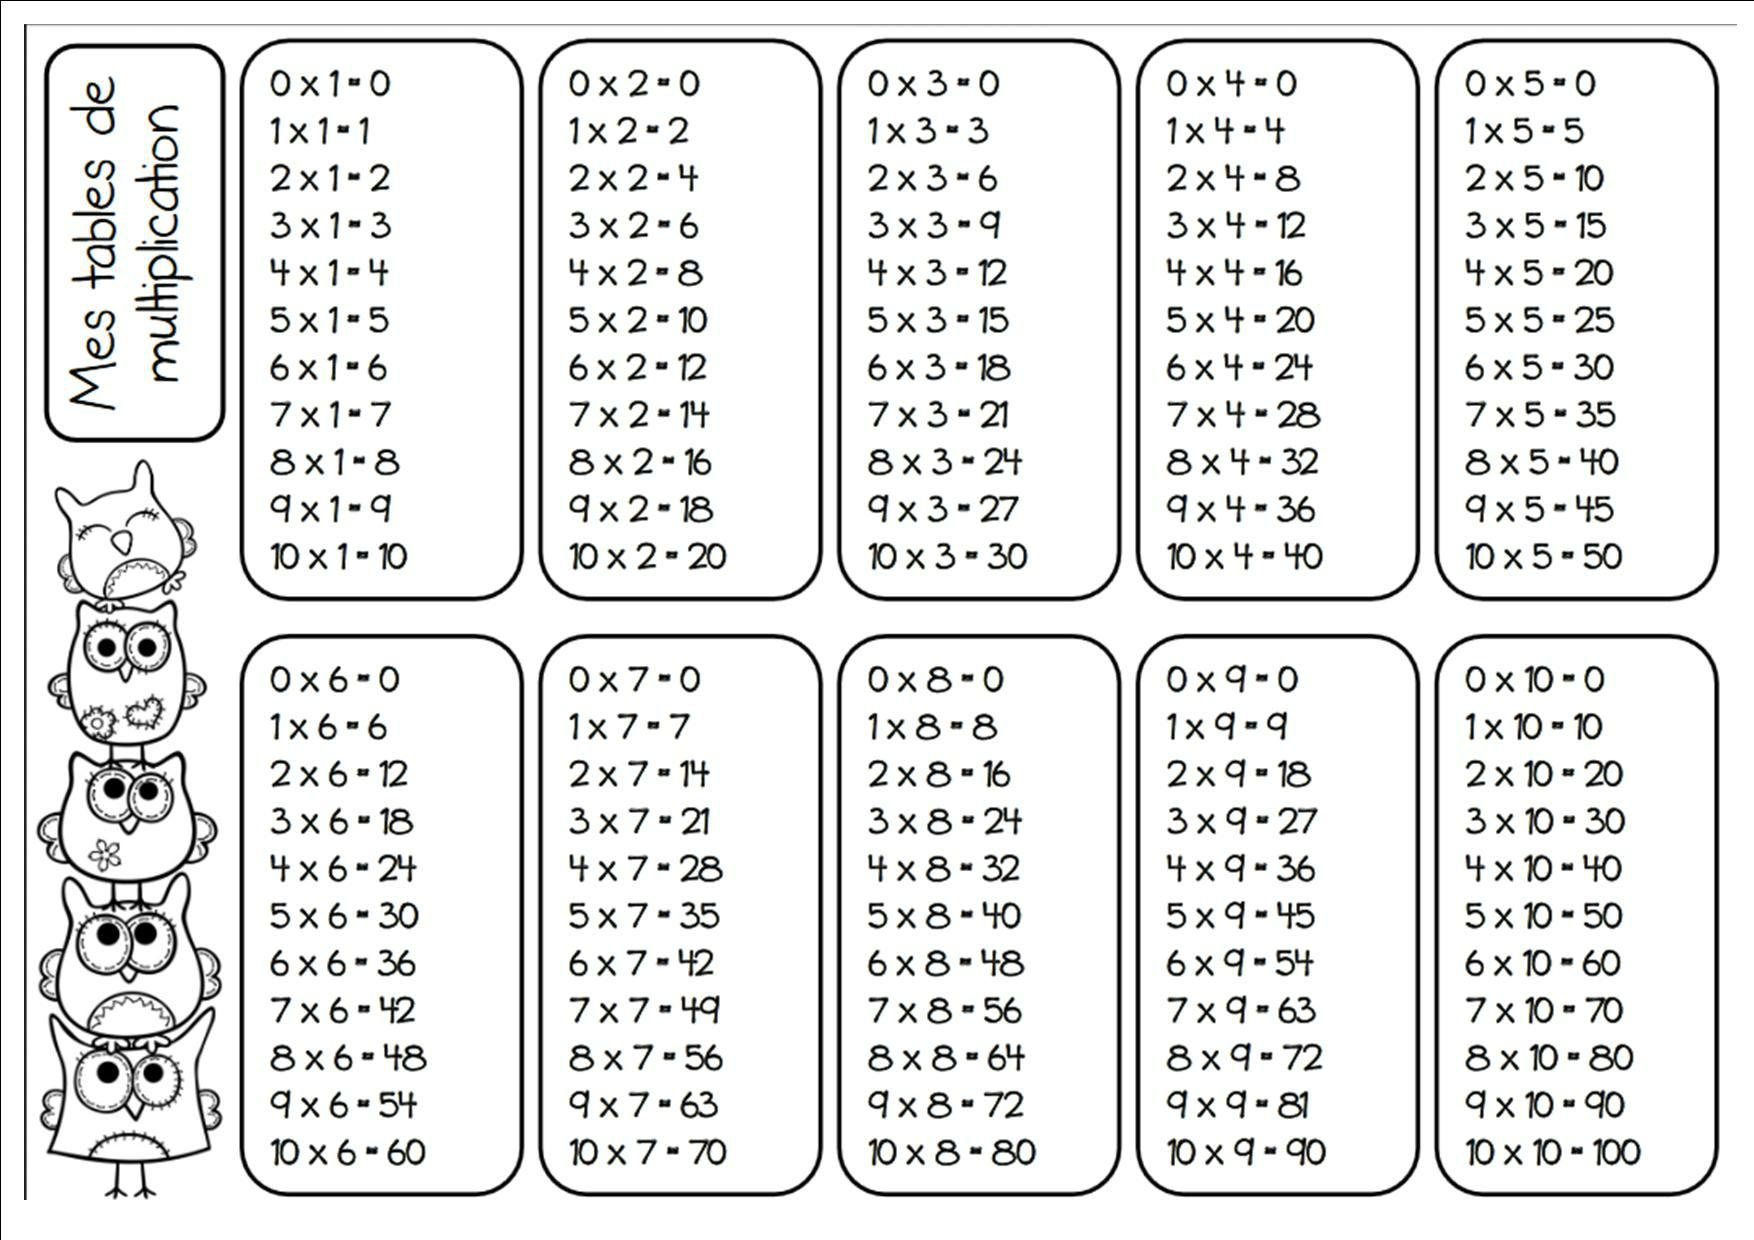 Maths 8 ce2 la multiplication la classe des ce de - Apprentissage des tables de multiplication ...